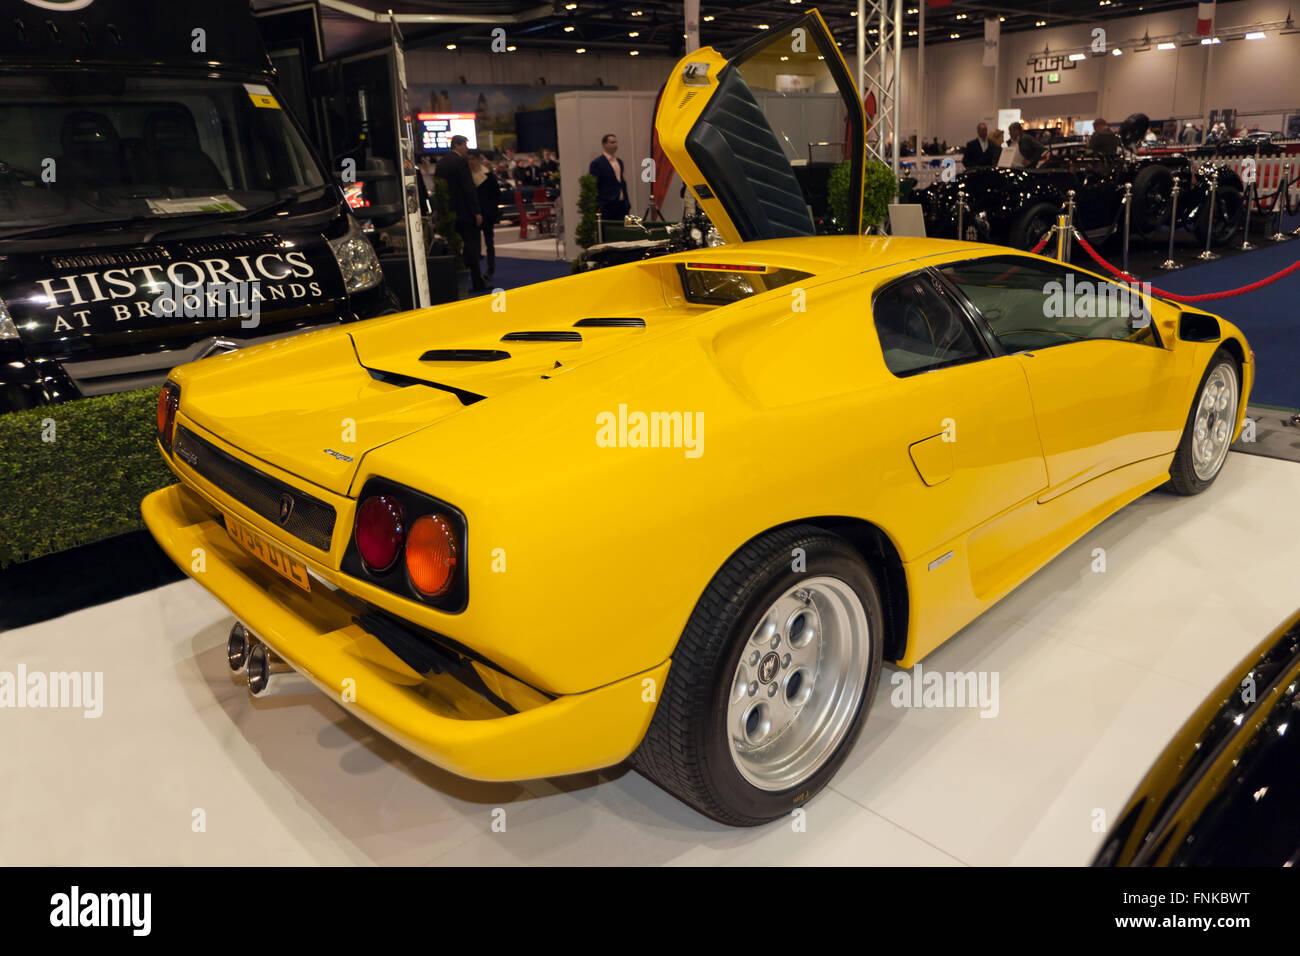 Rear view of a 1991 Lamborghini Diablo, on static display at